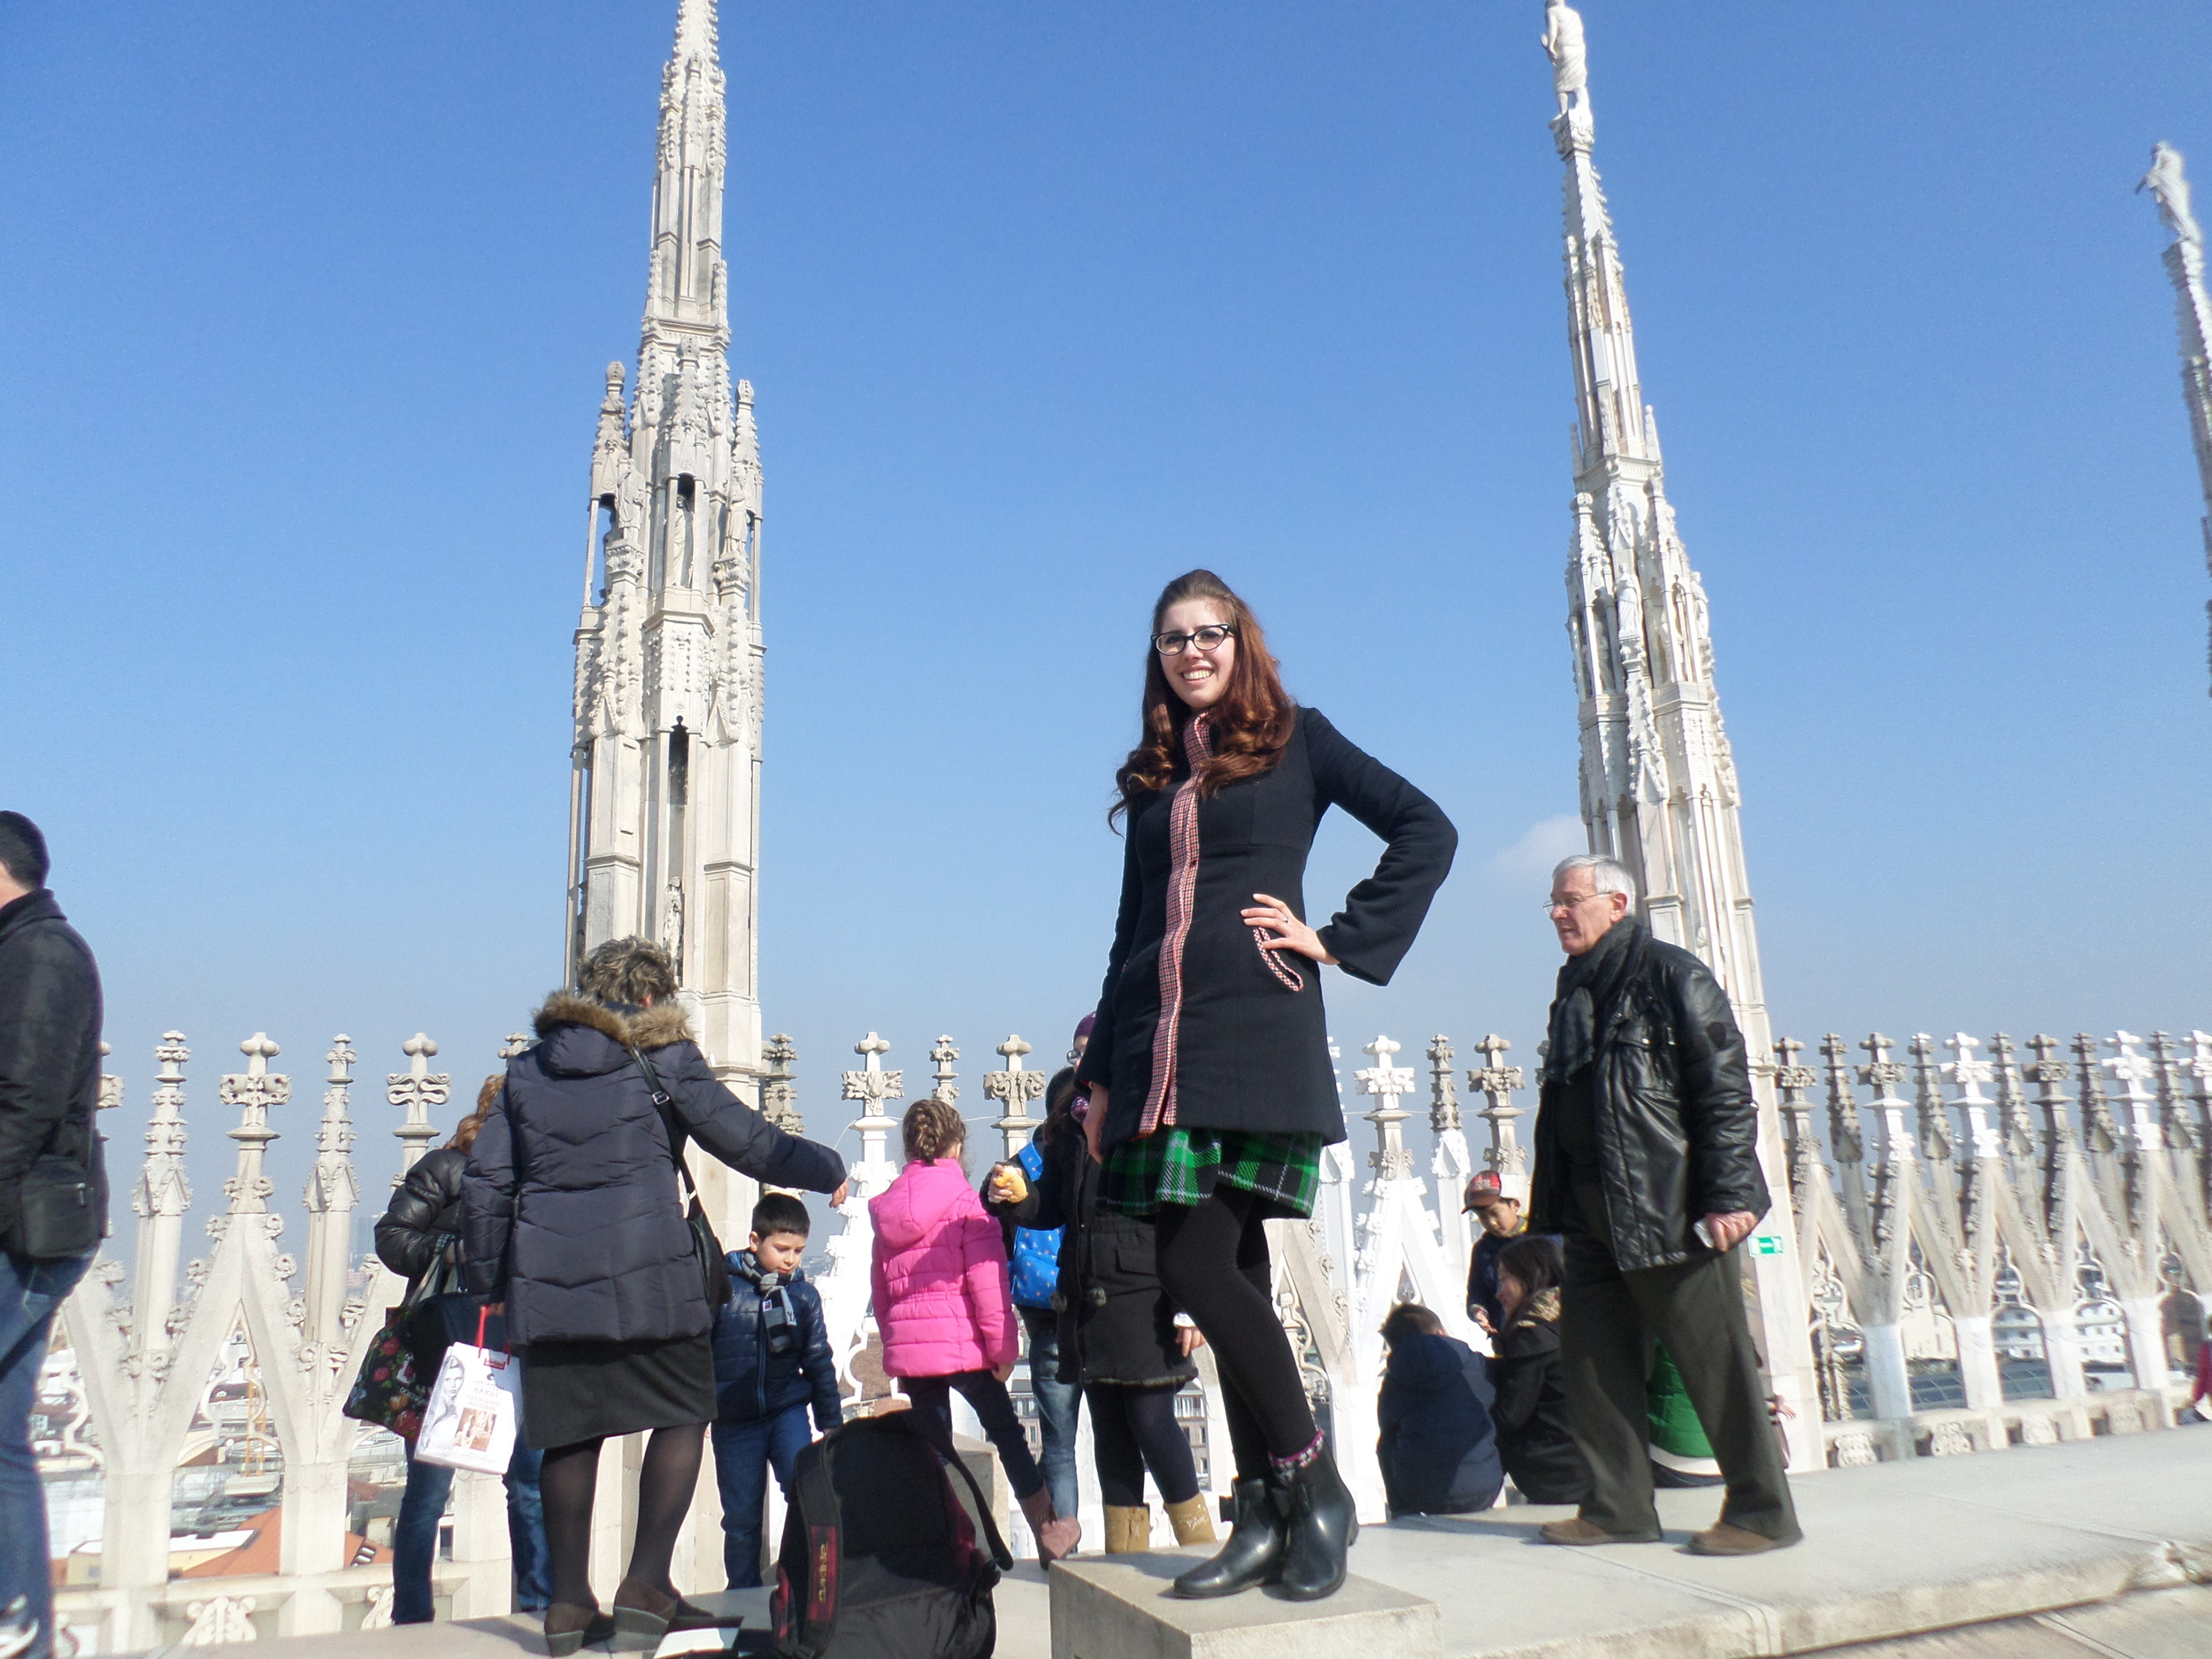 On top of the infamous Milano Duomo. UNBELIEVABLE architecture and a stunning, stunning, work or art! Thanks to the fellow Canadese that snapped this shot.